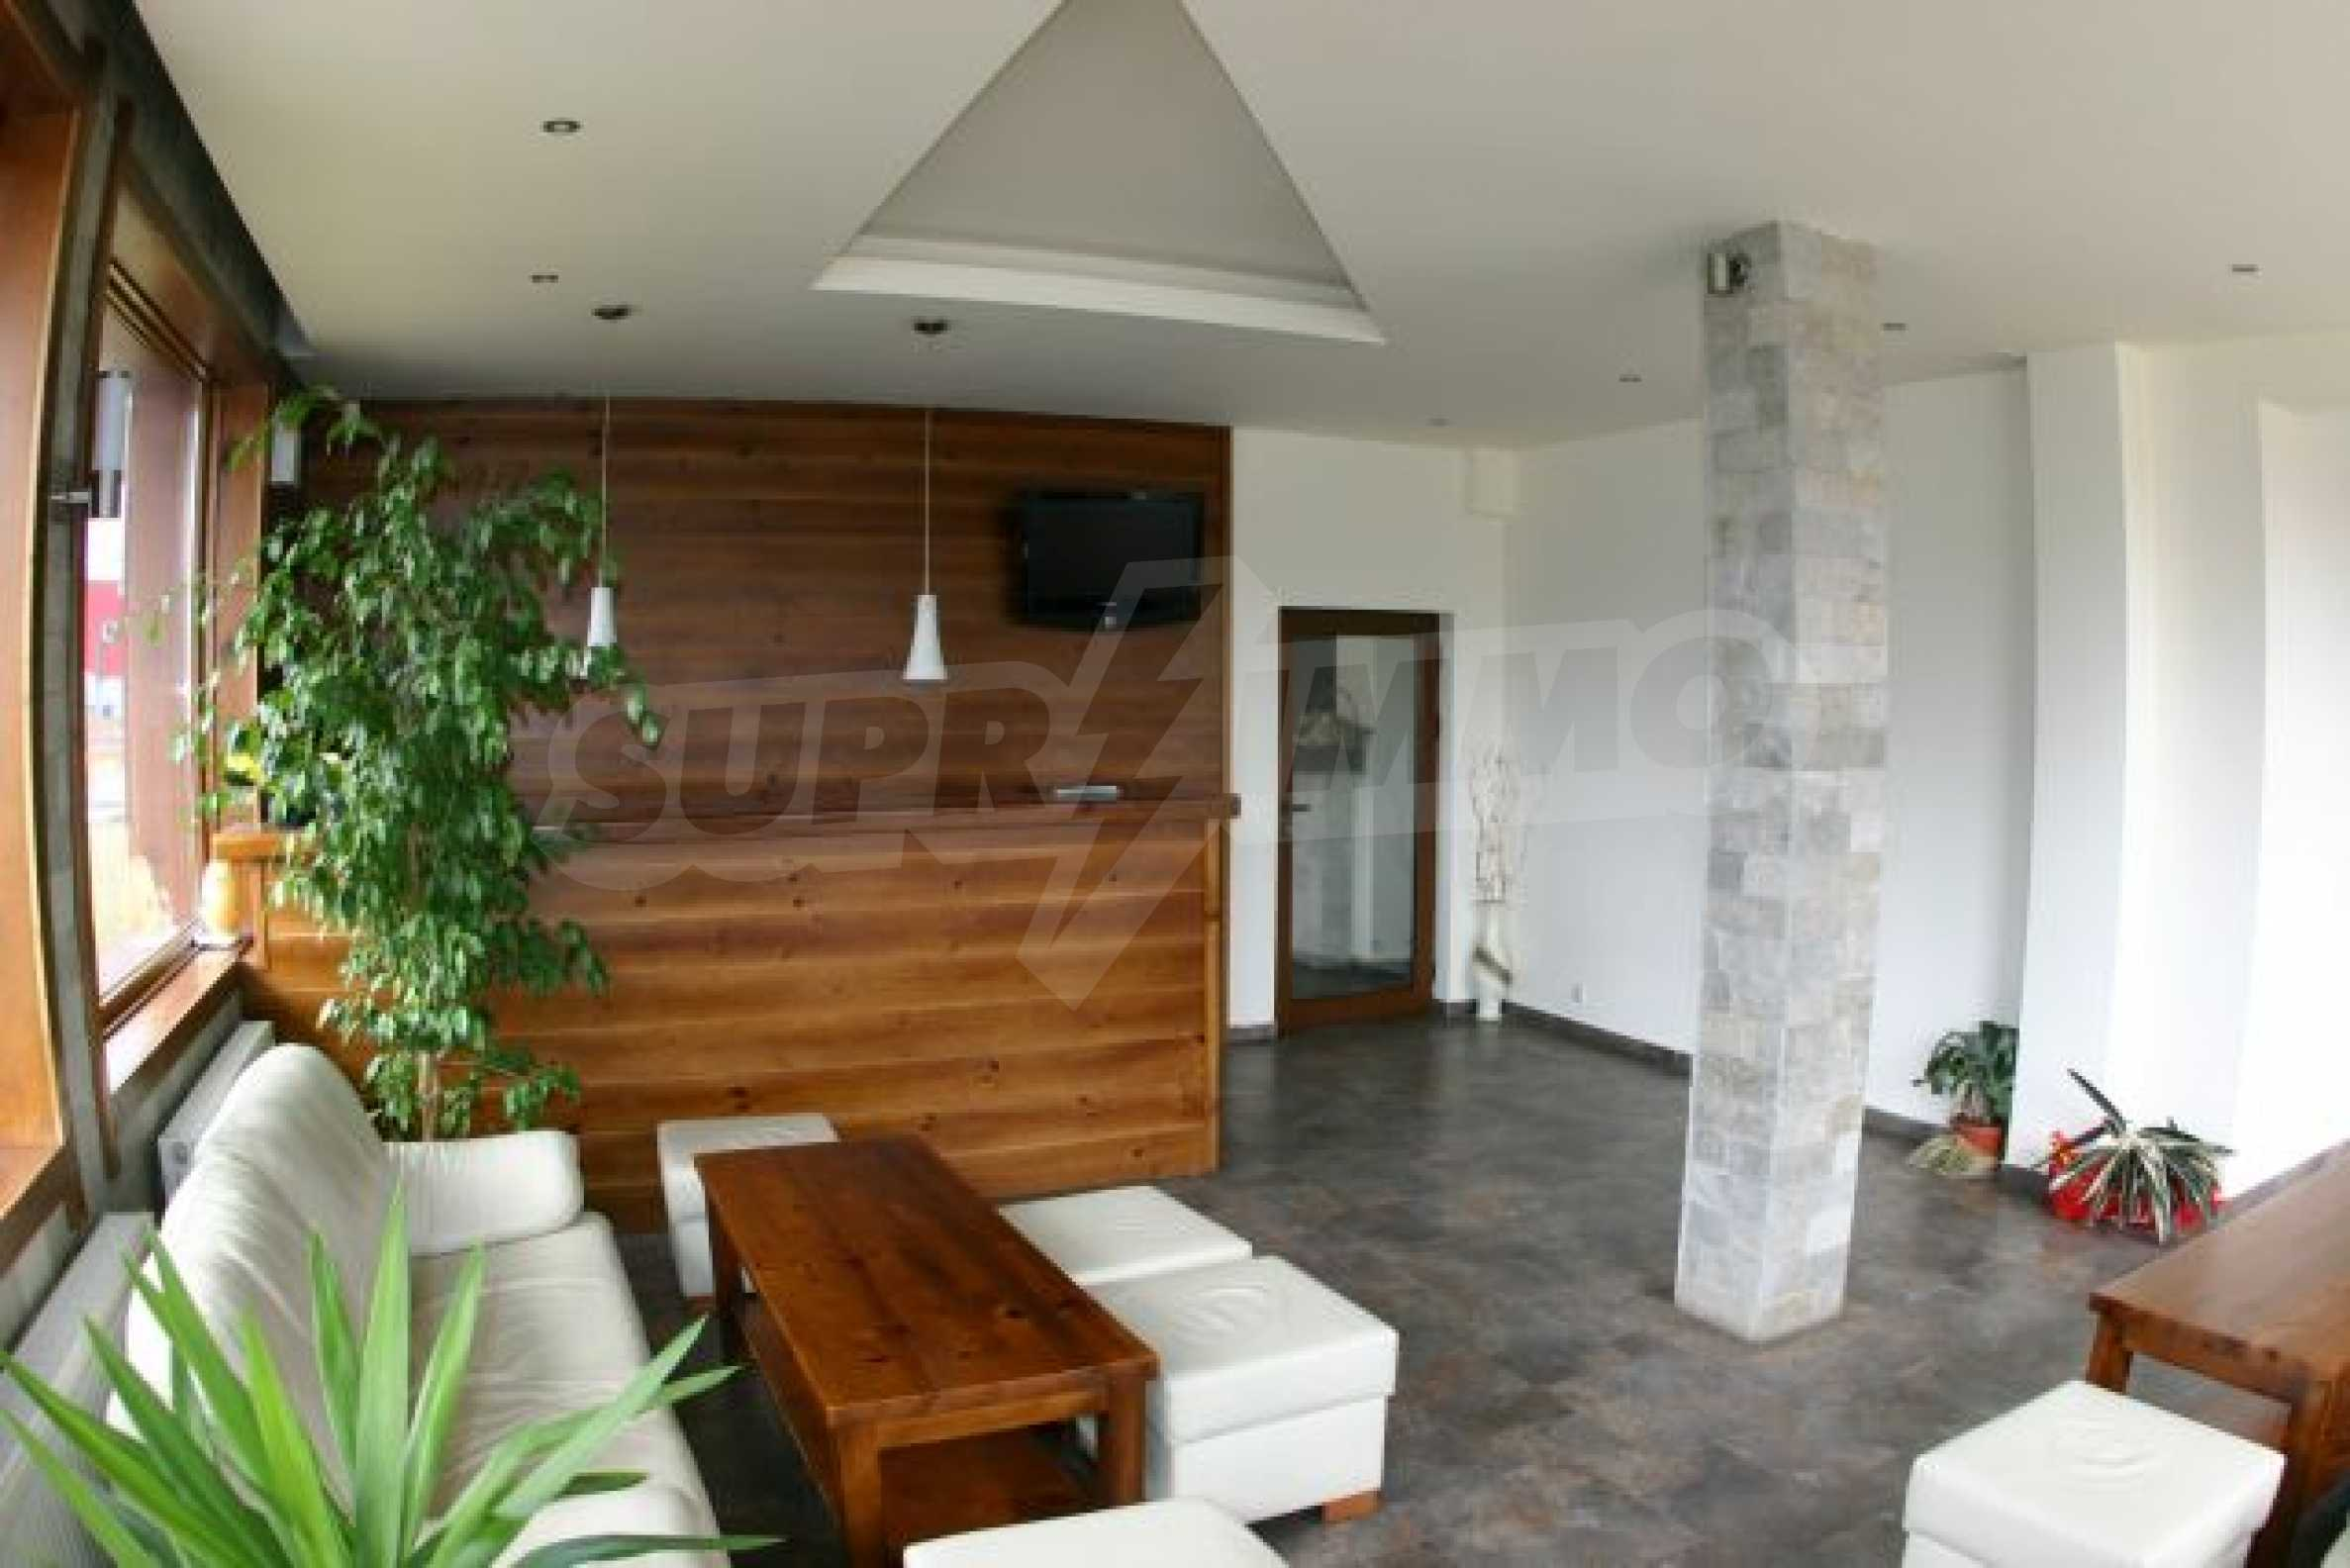 Fully furnished and equipped hotel in an excellent condition in Bansko 3